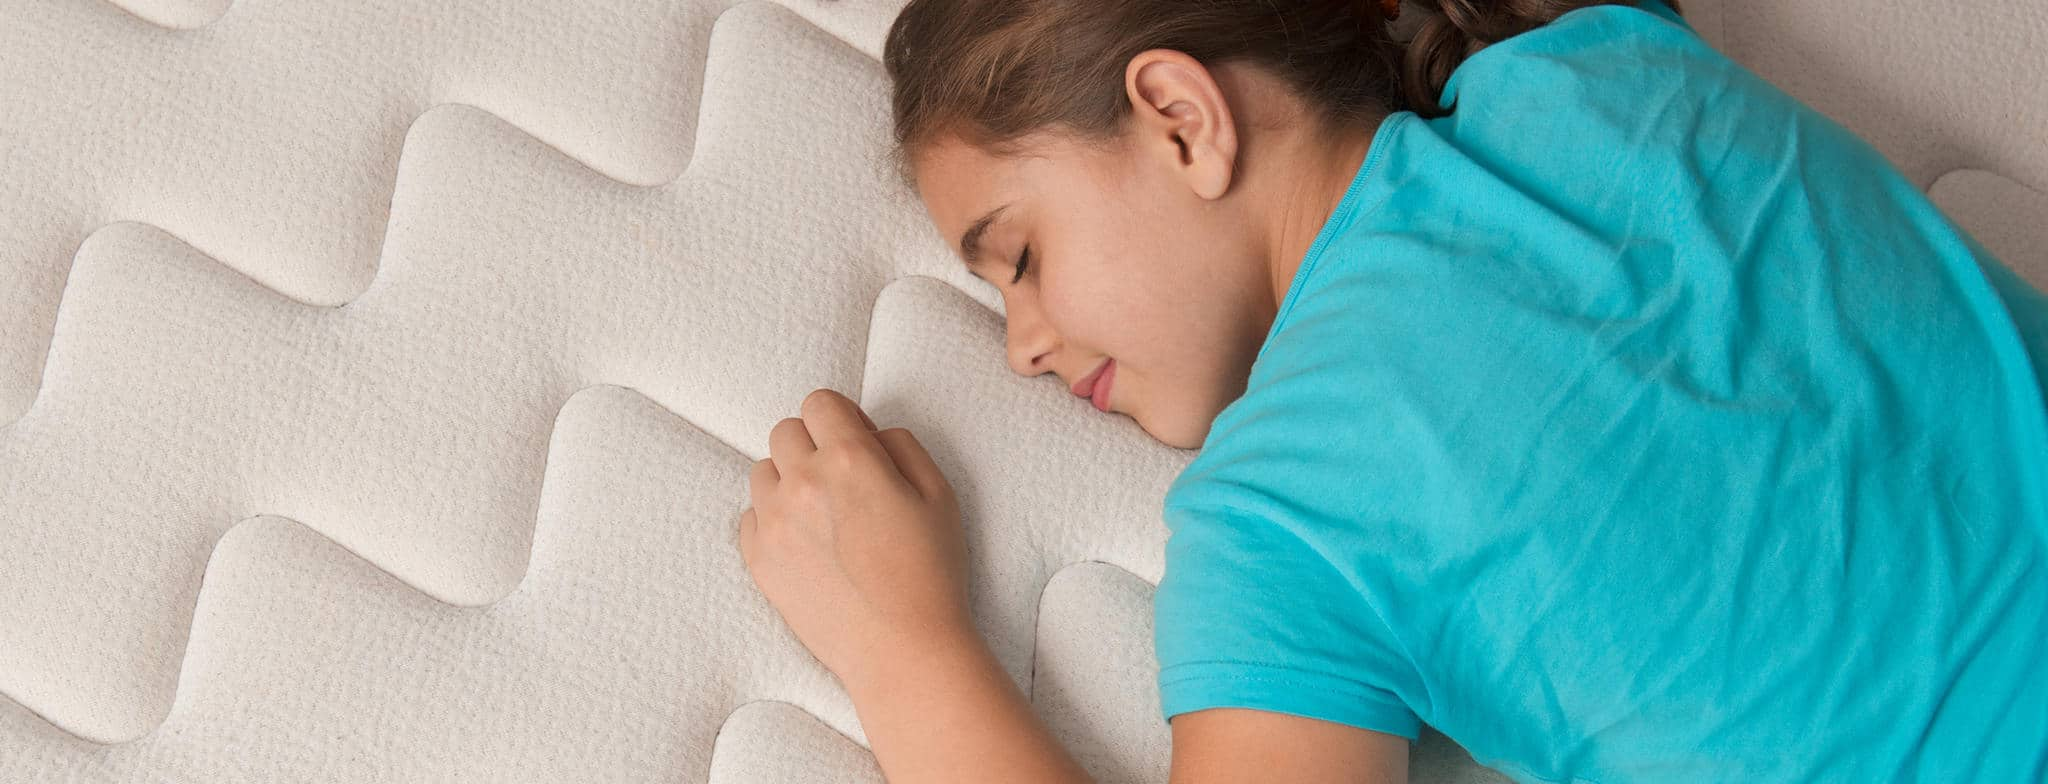 Best Mattresses for Teenagers Reviewed in Detail